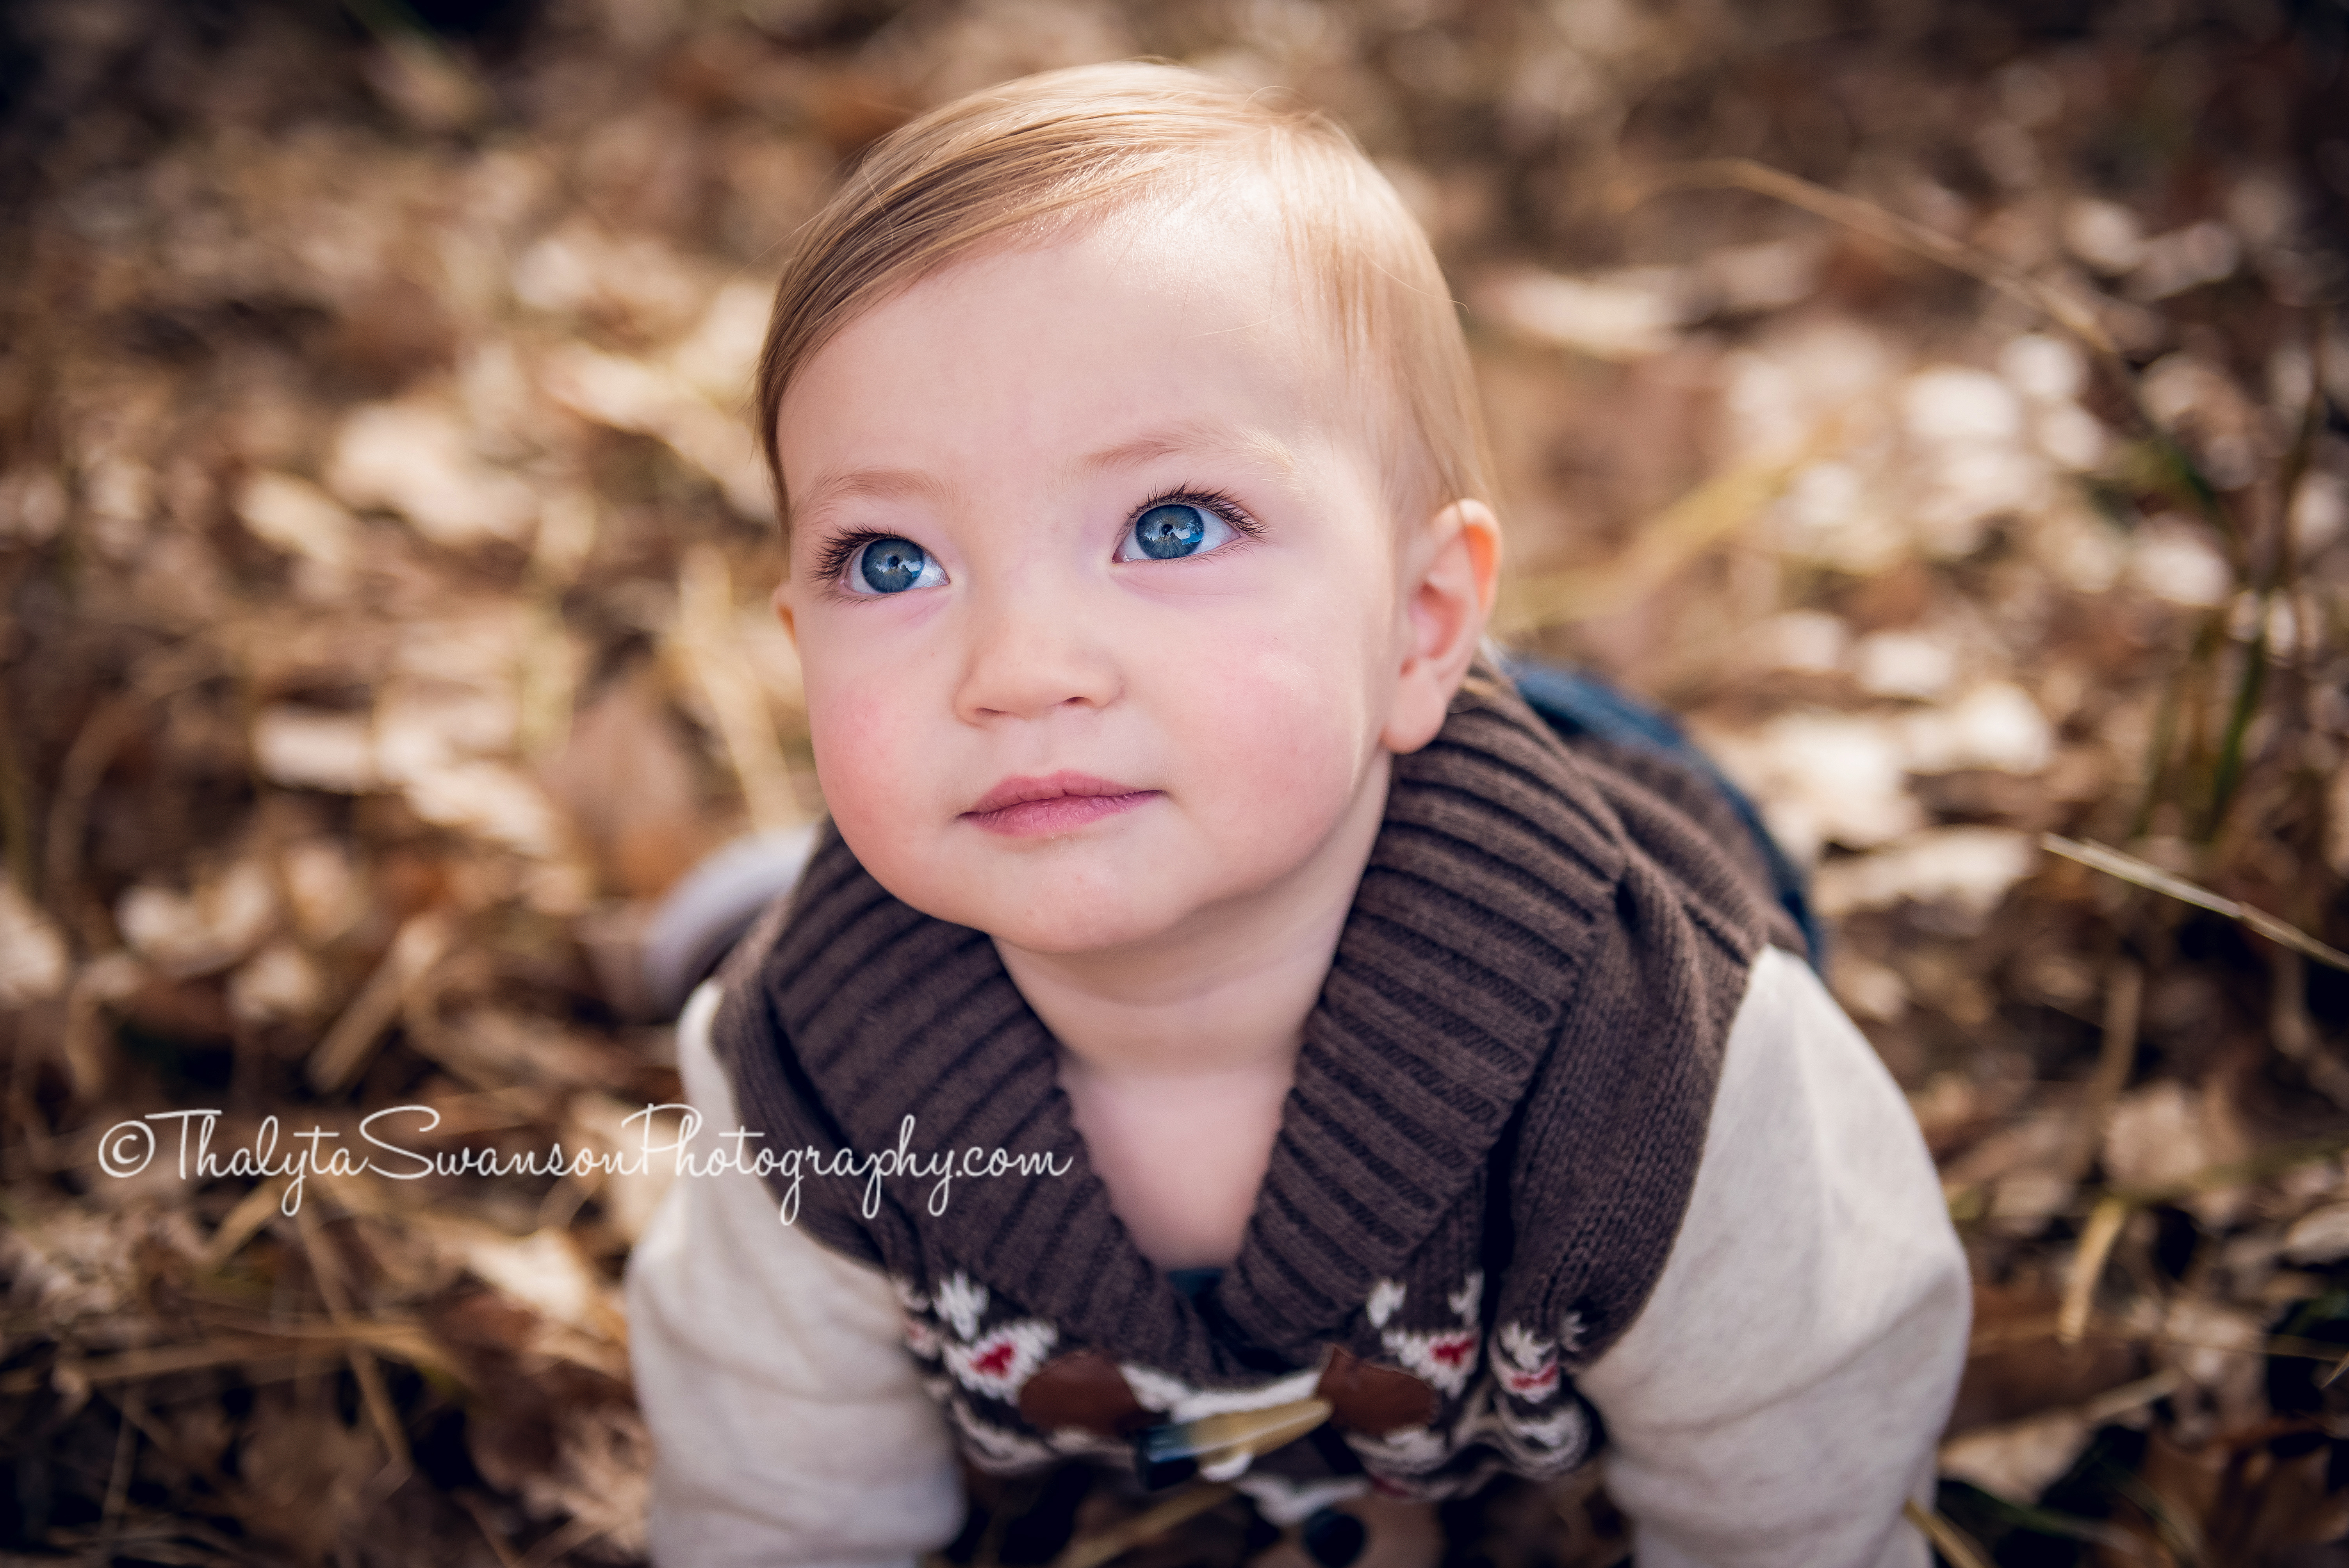 fort-collins-photographer-thalyta-swanson-photography-fall-mini-session-2